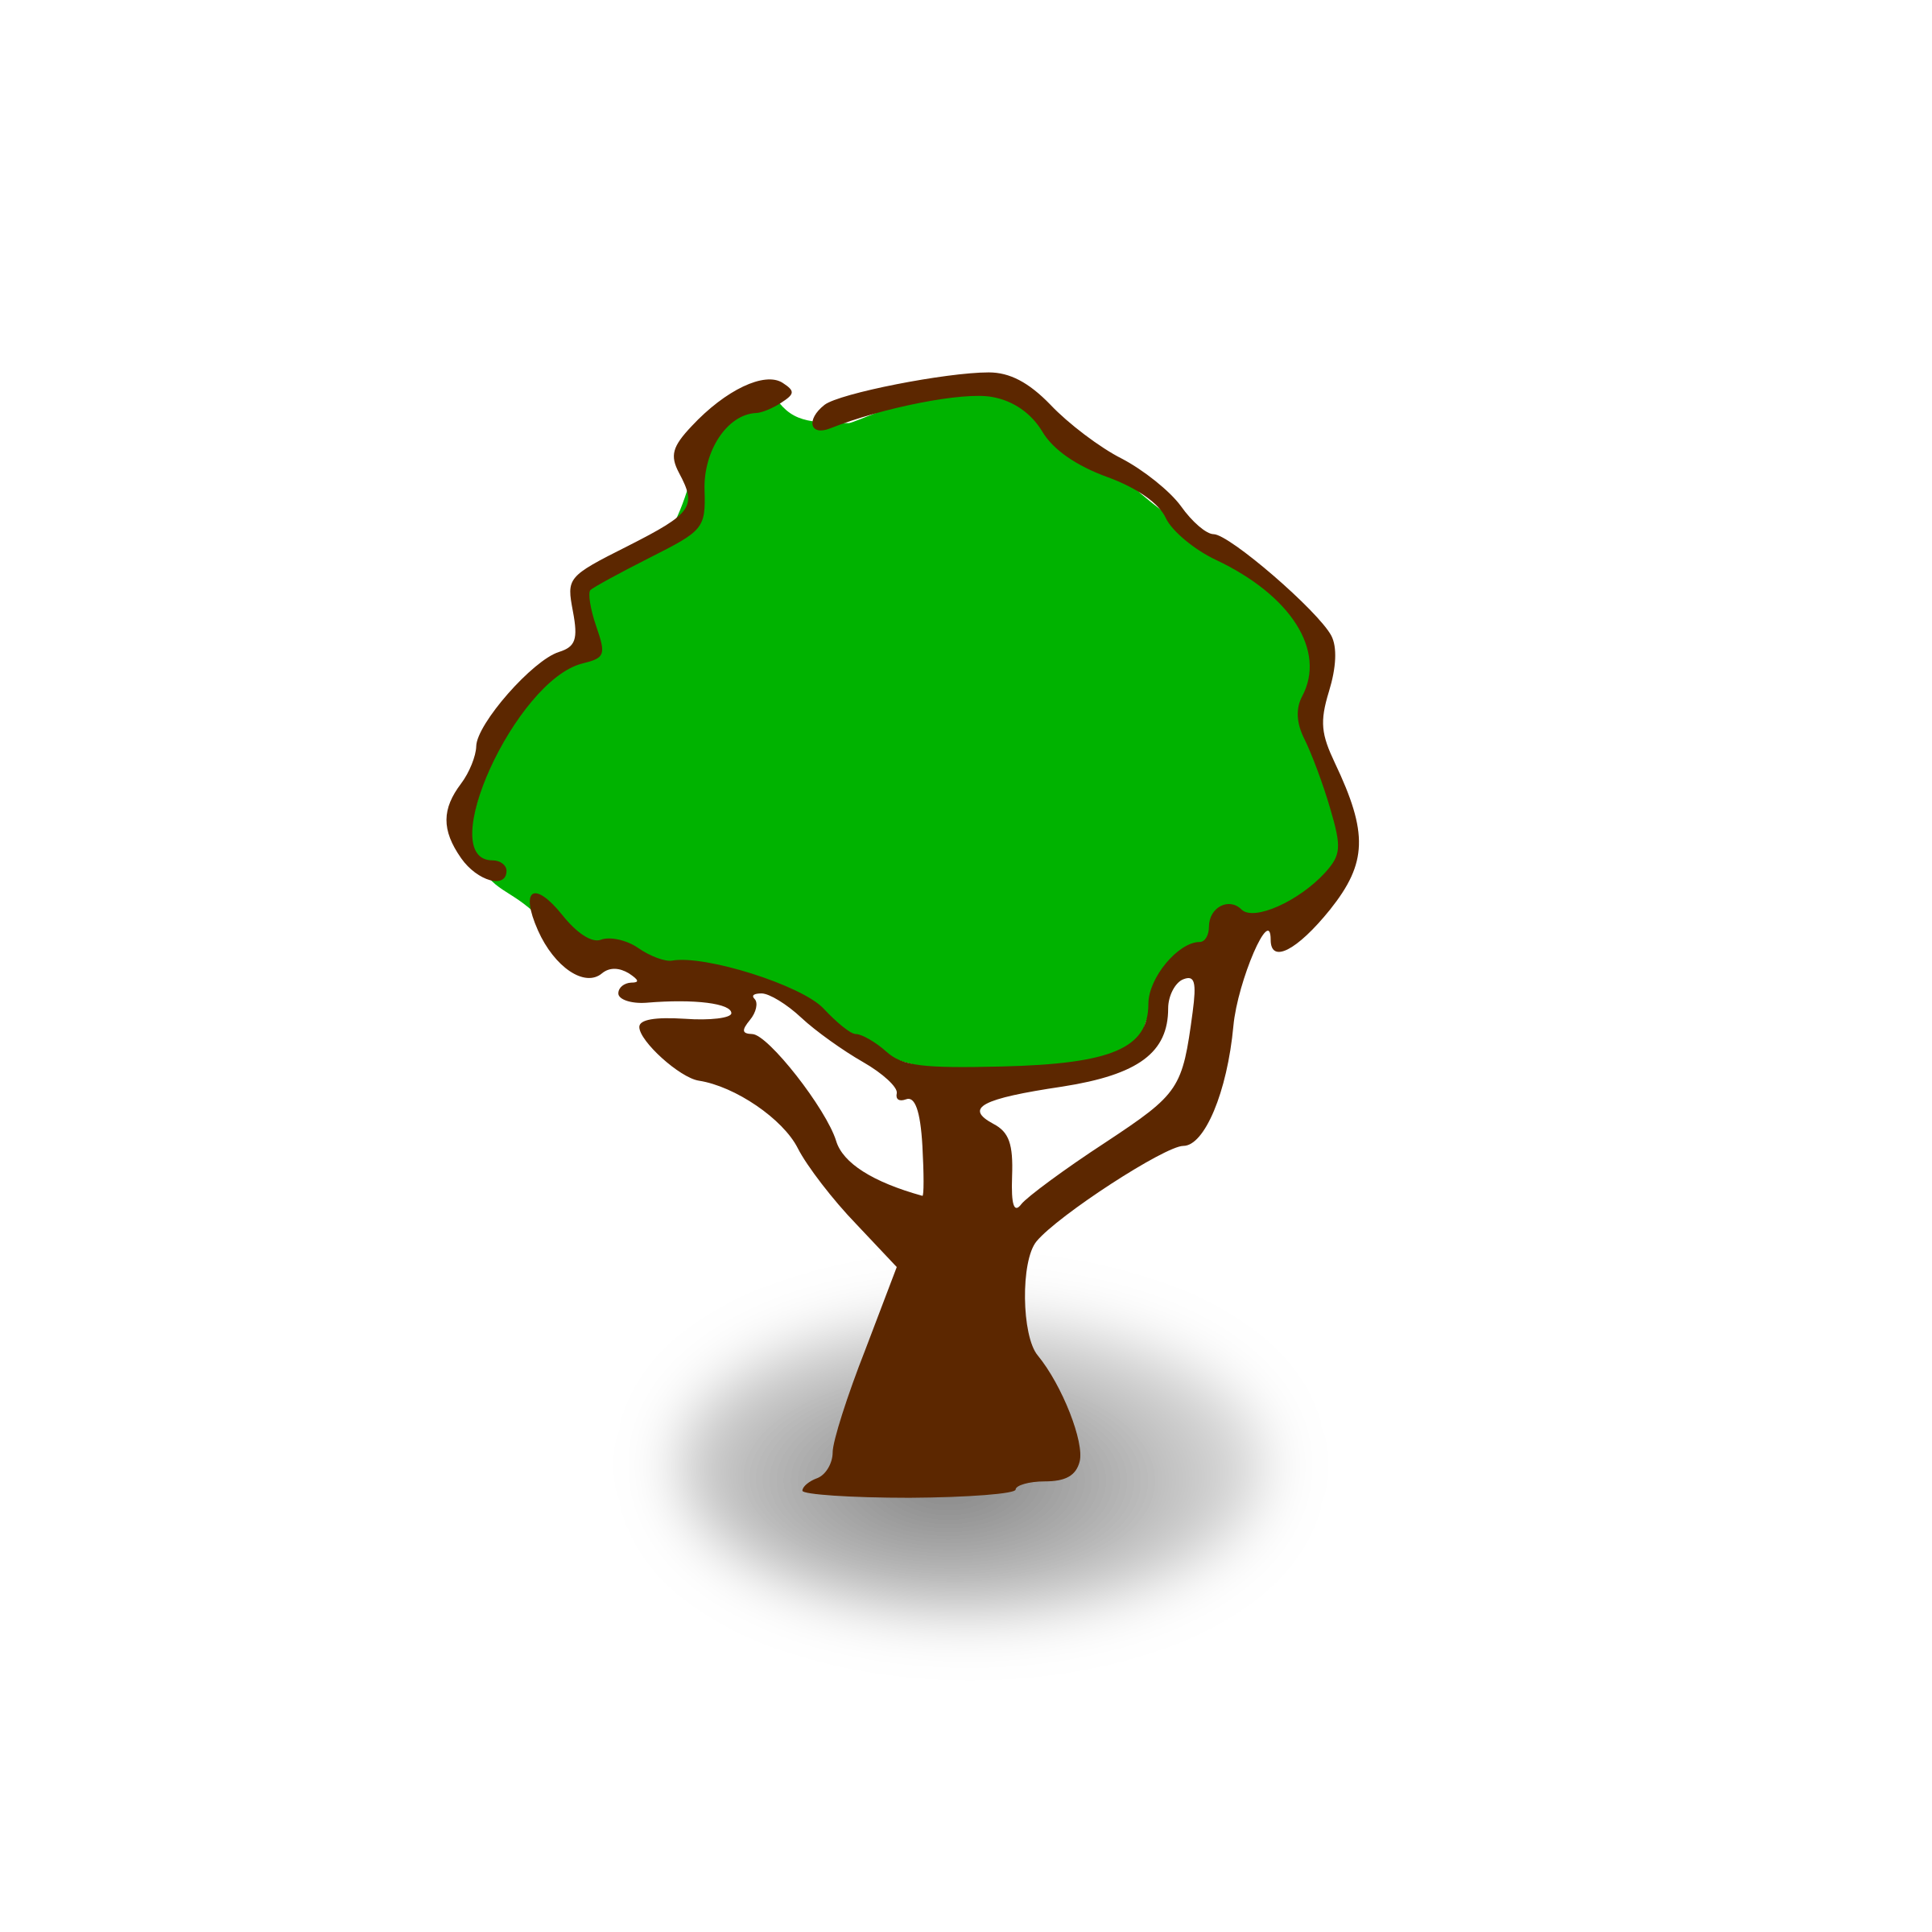 Tree map clipart graphic free download Clipart - RPG map symbols: tree graphic free download